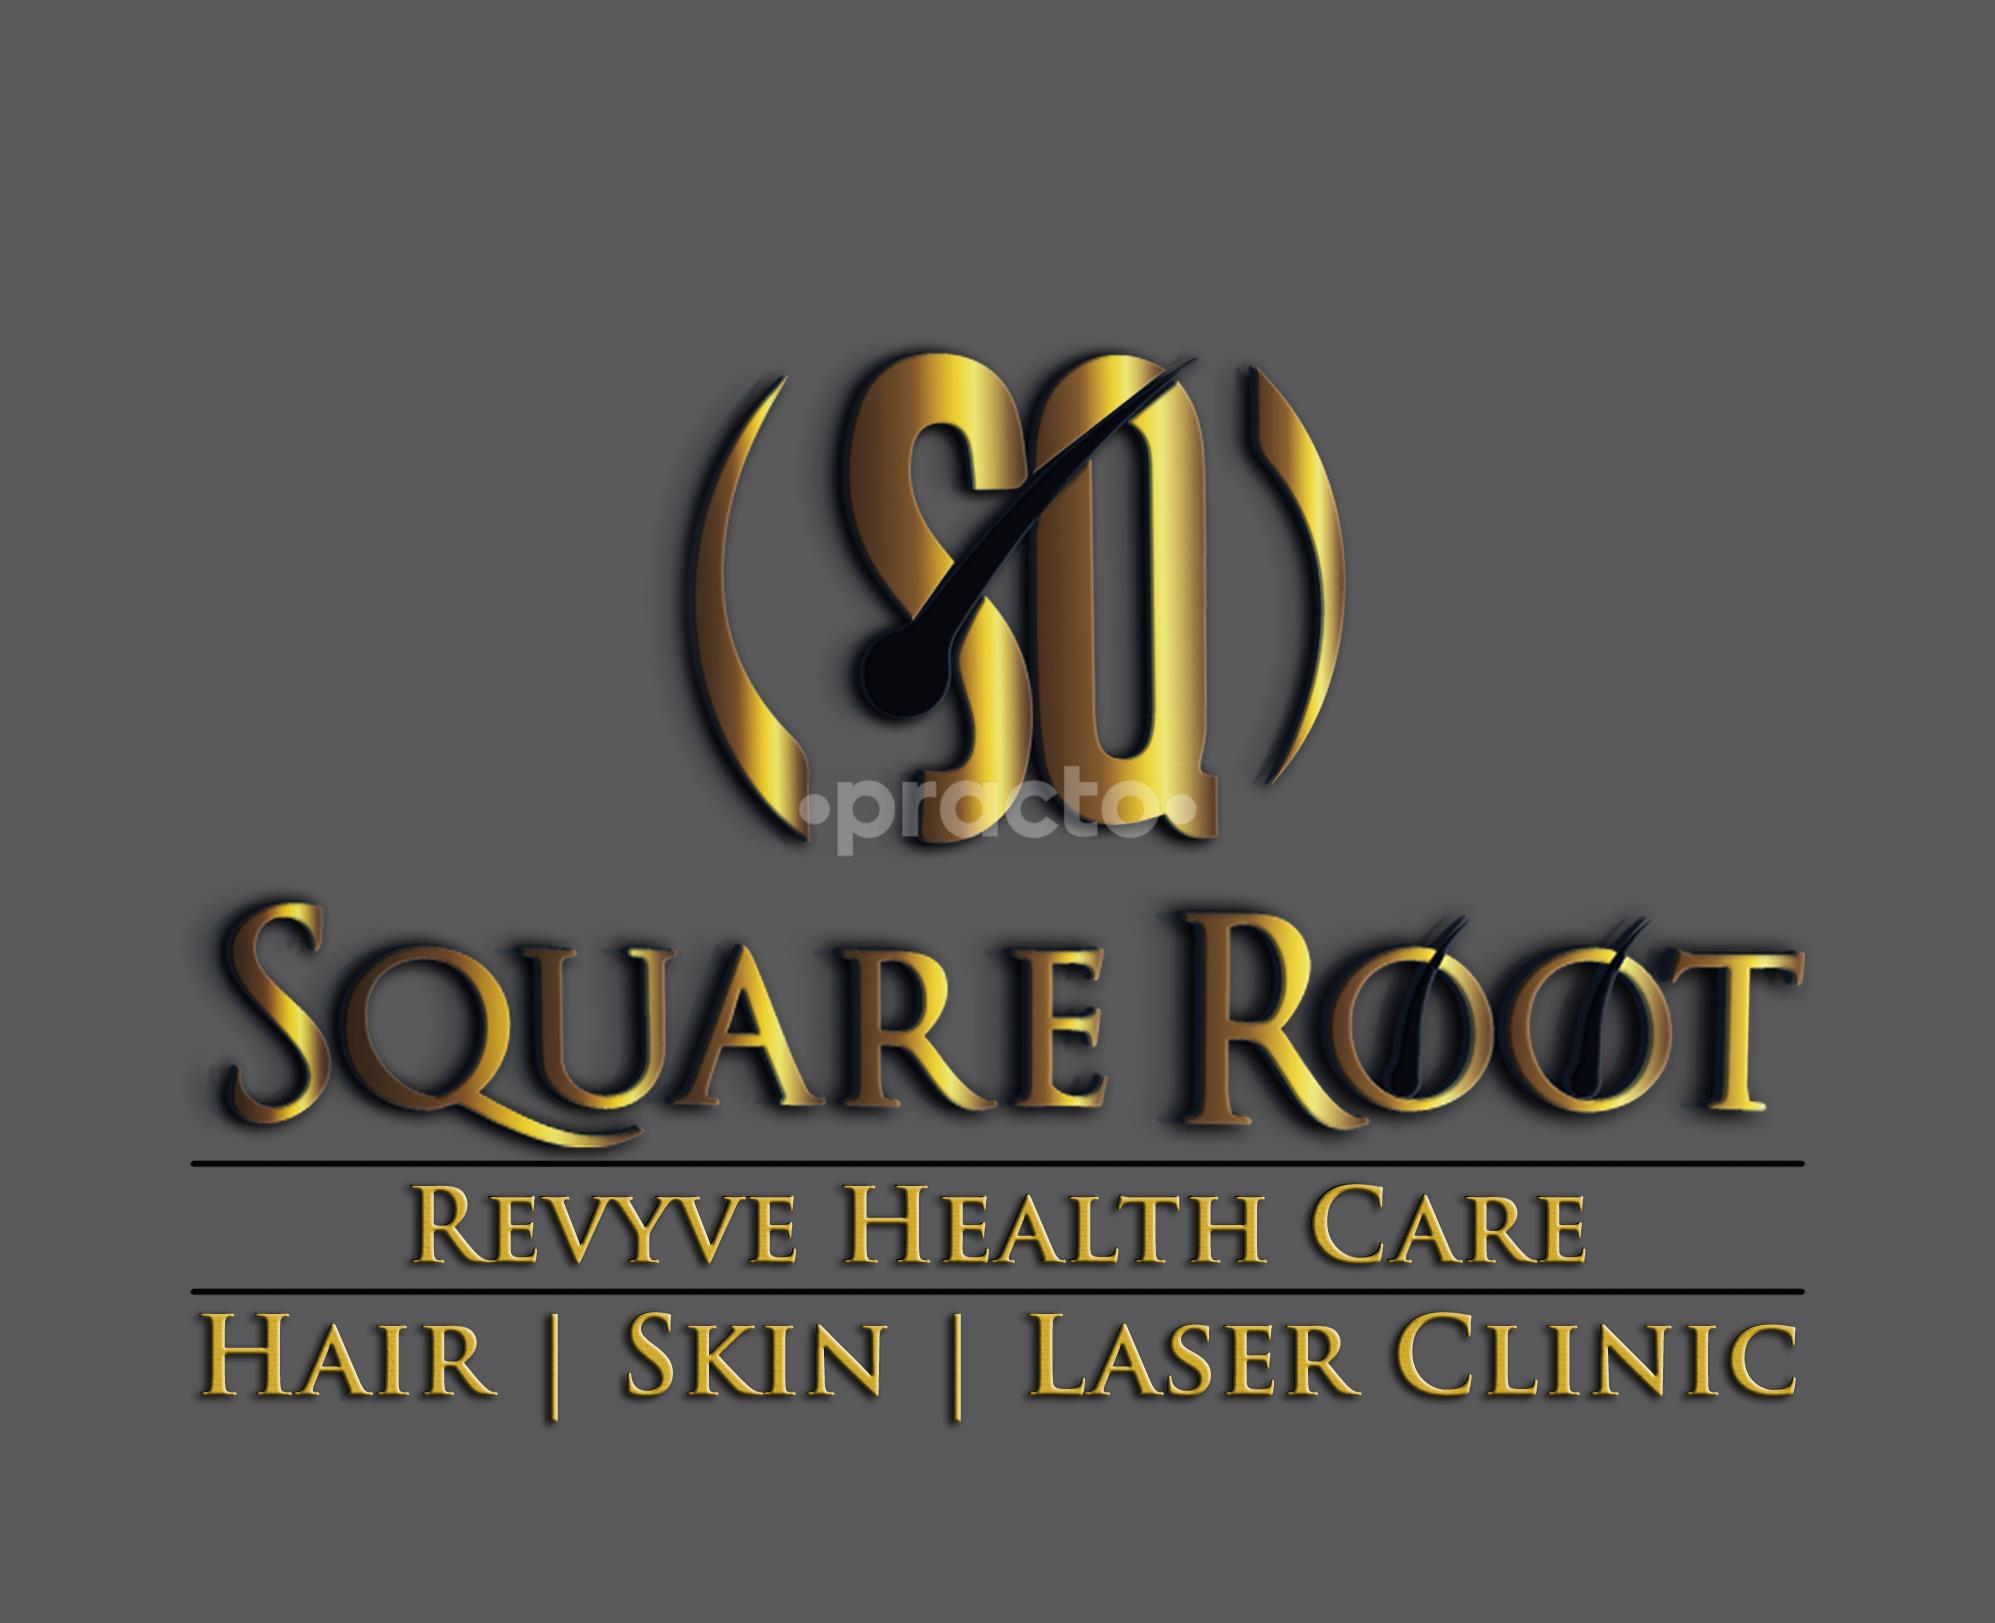 Square Root Revyve Health Care